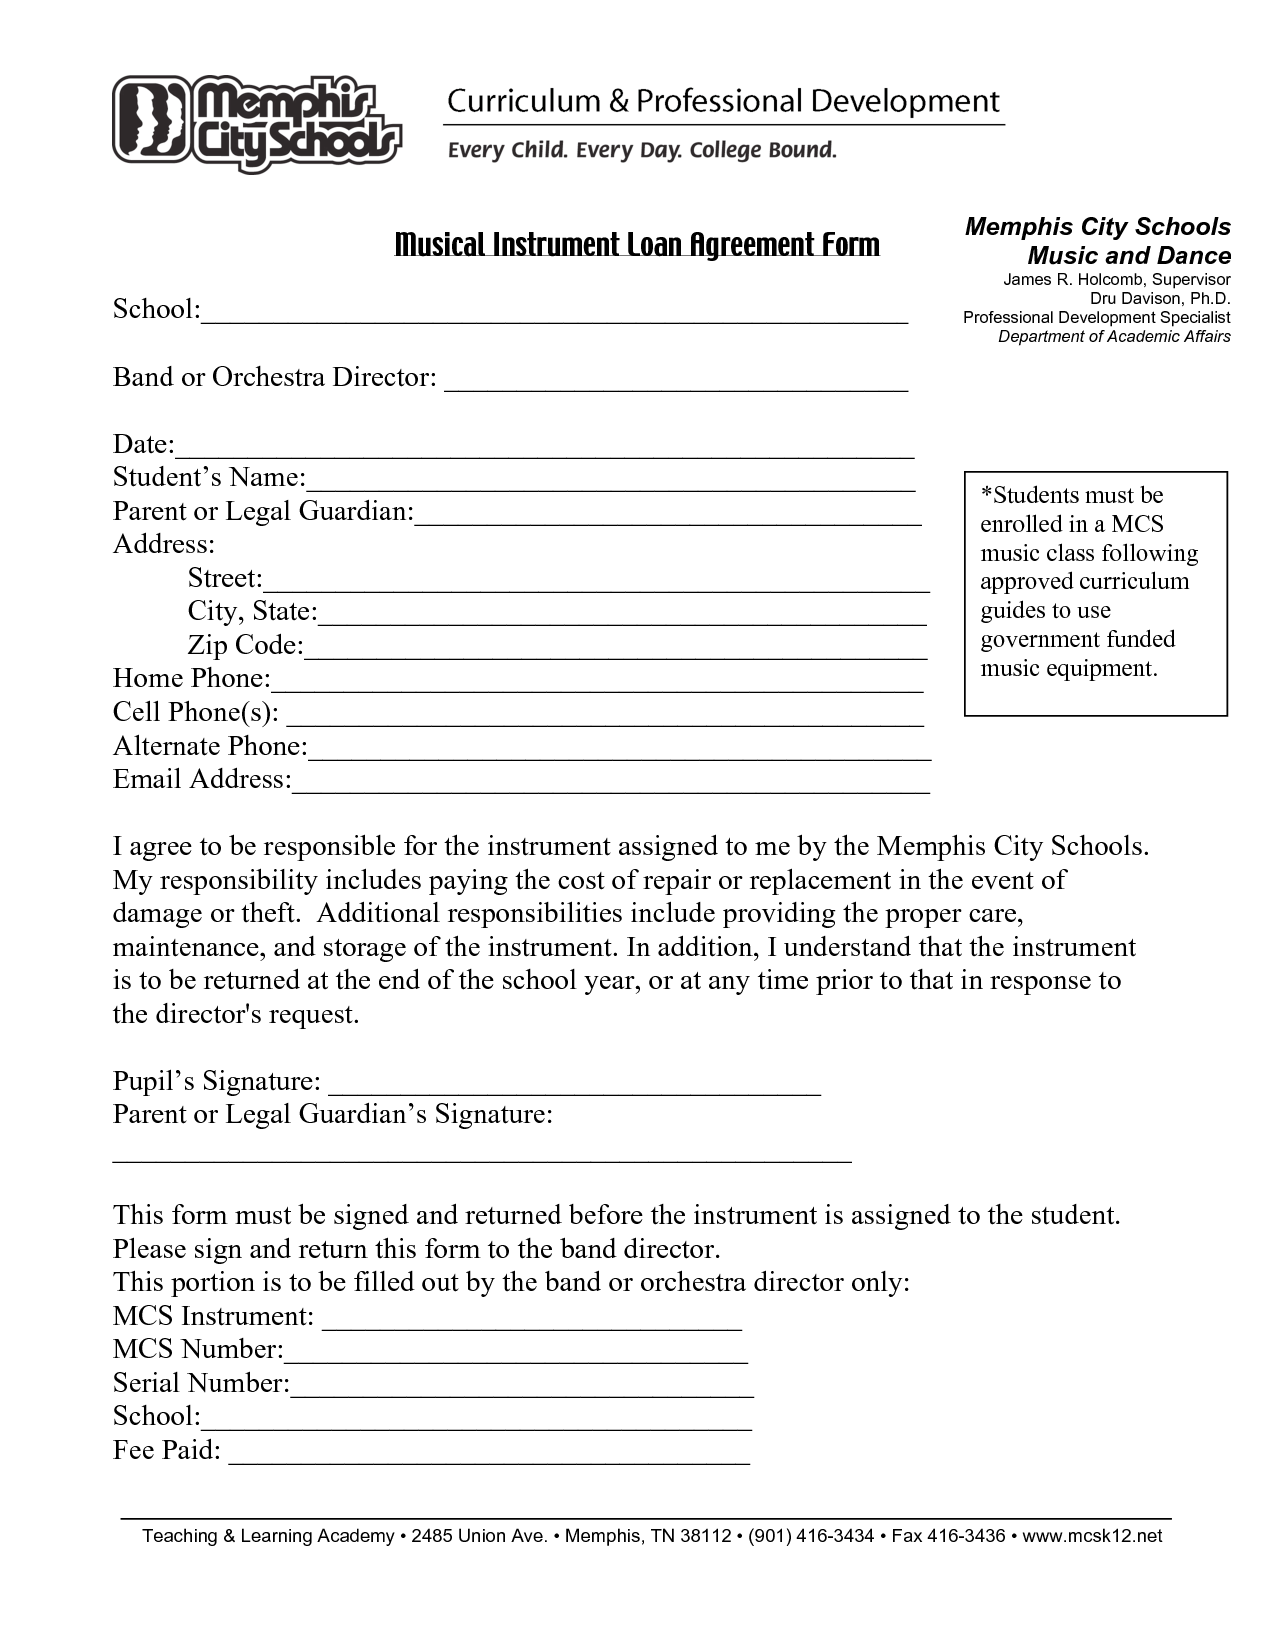 printable sample loan agreement form form attorney legal forms in 2018 pinterest templates. Black Bedroom Furniture Sets. Home Design Ideas